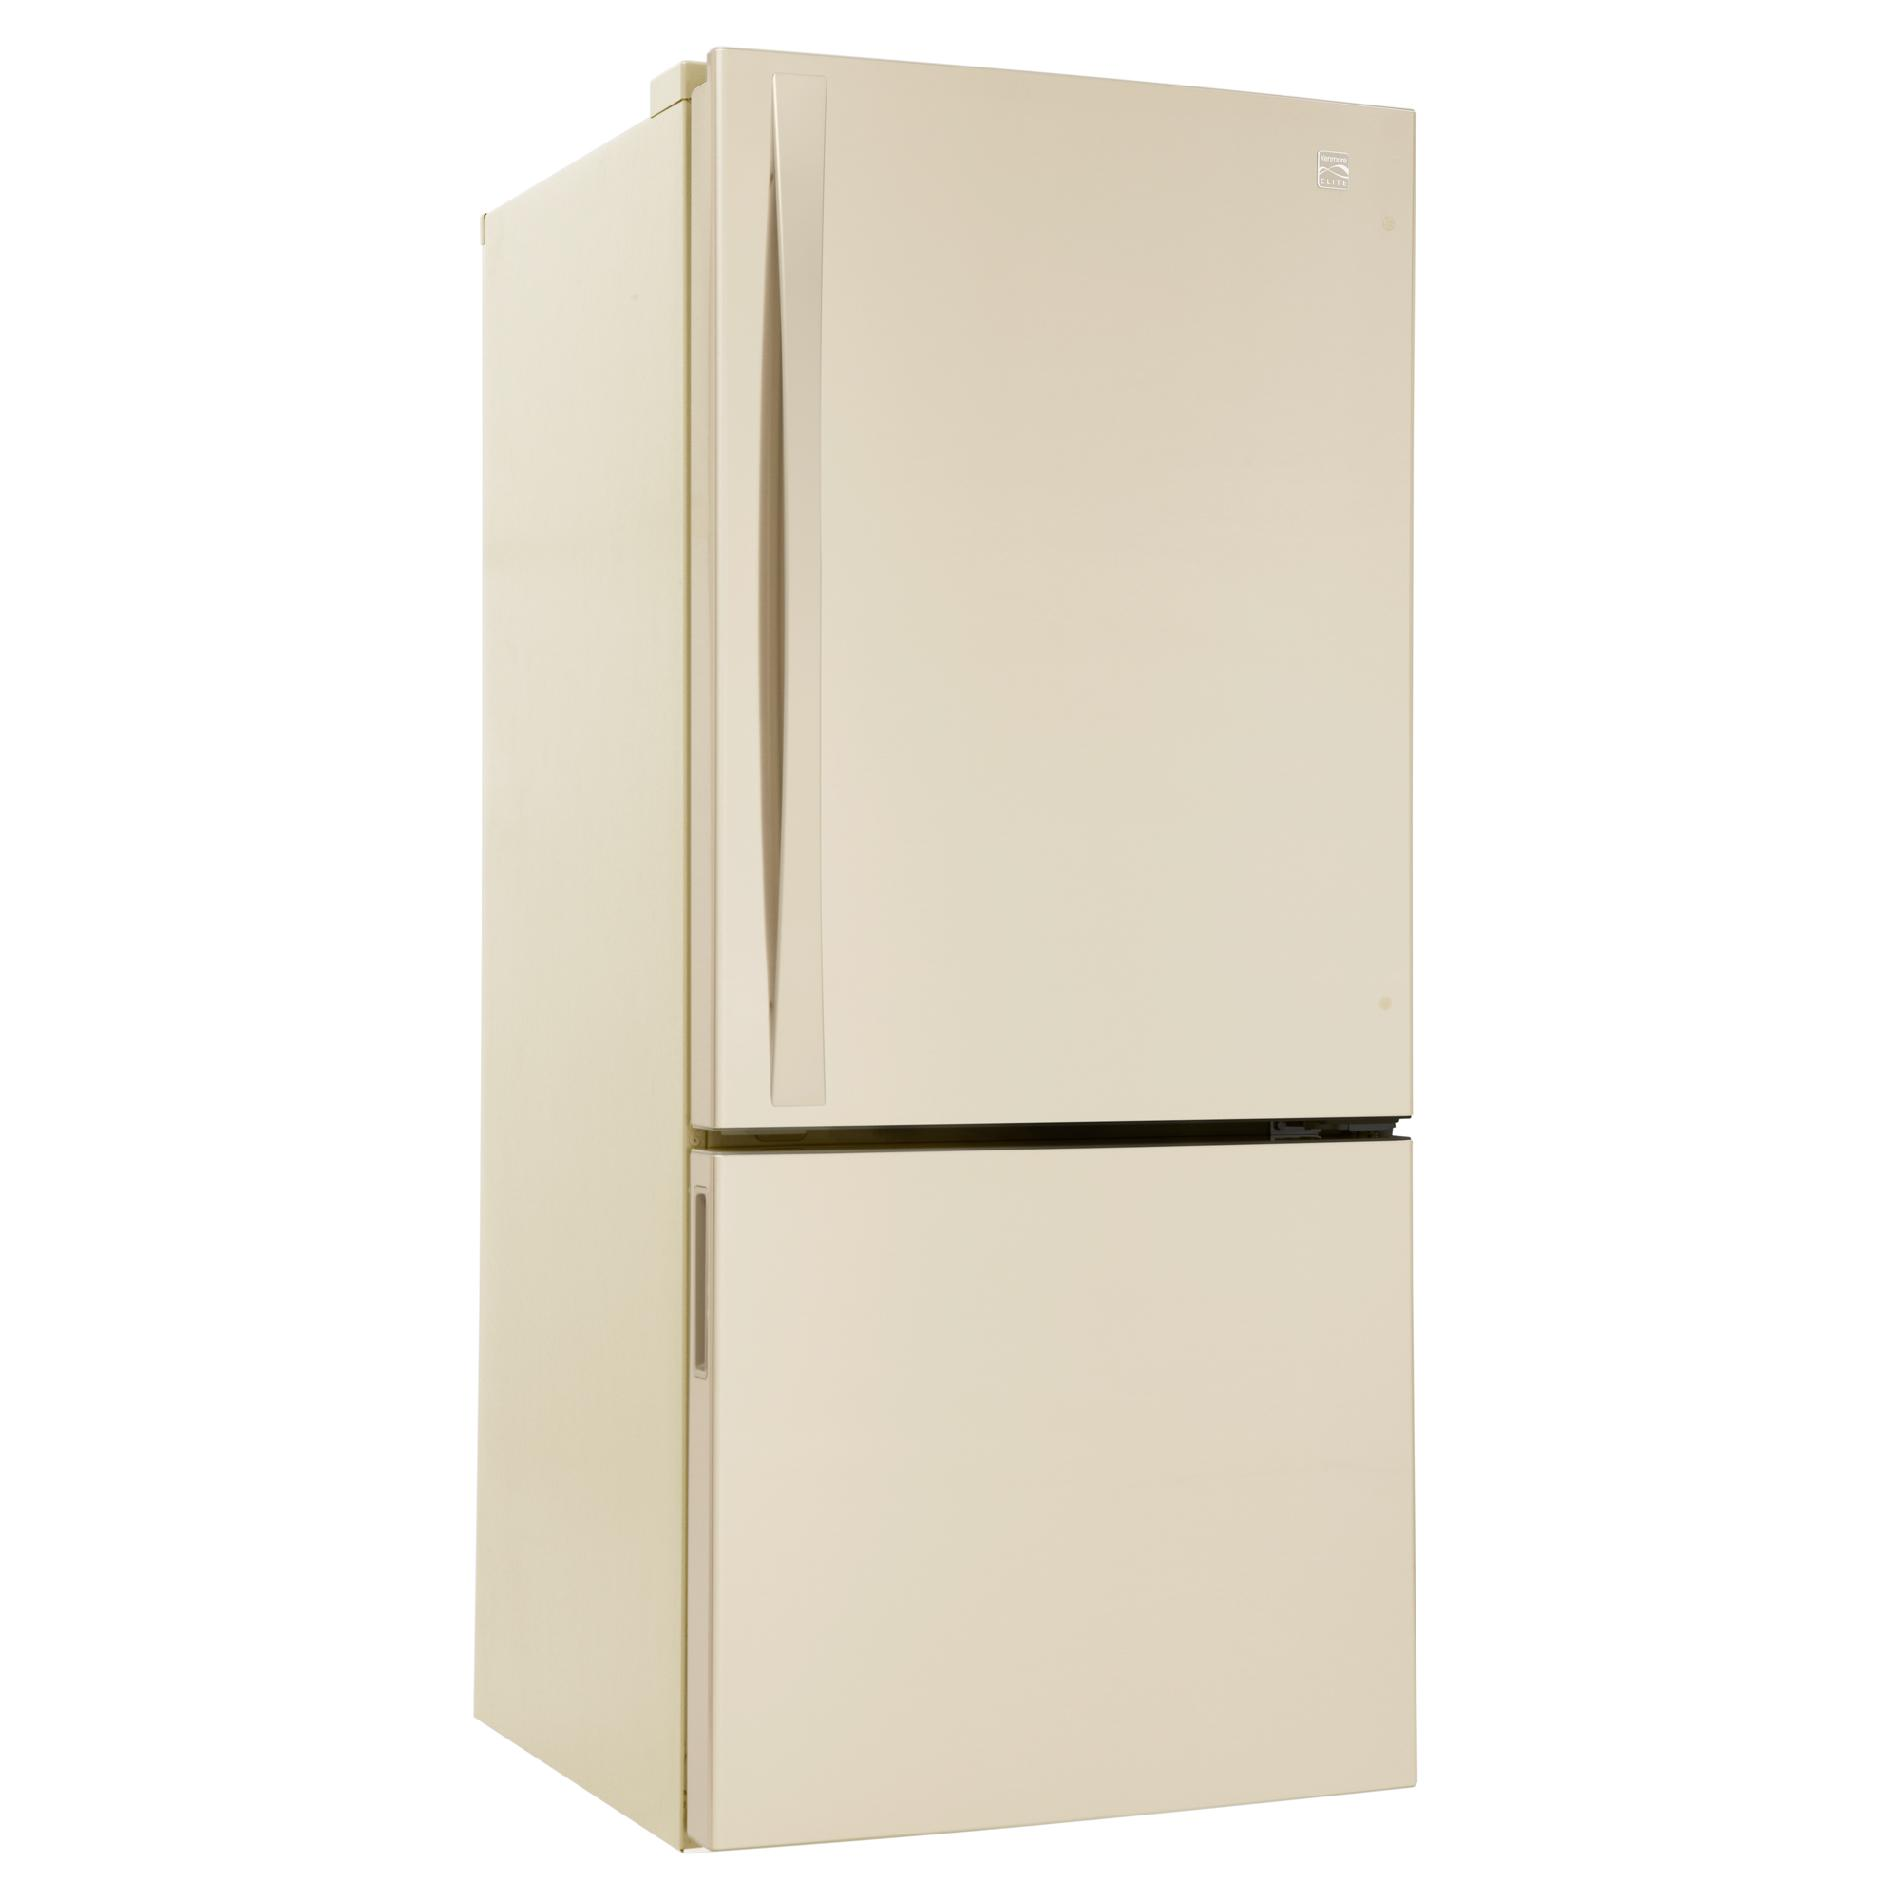 Kenmore Elite 22.1 cu. ft. Bottom-Freezer Refrigerator - Bisque